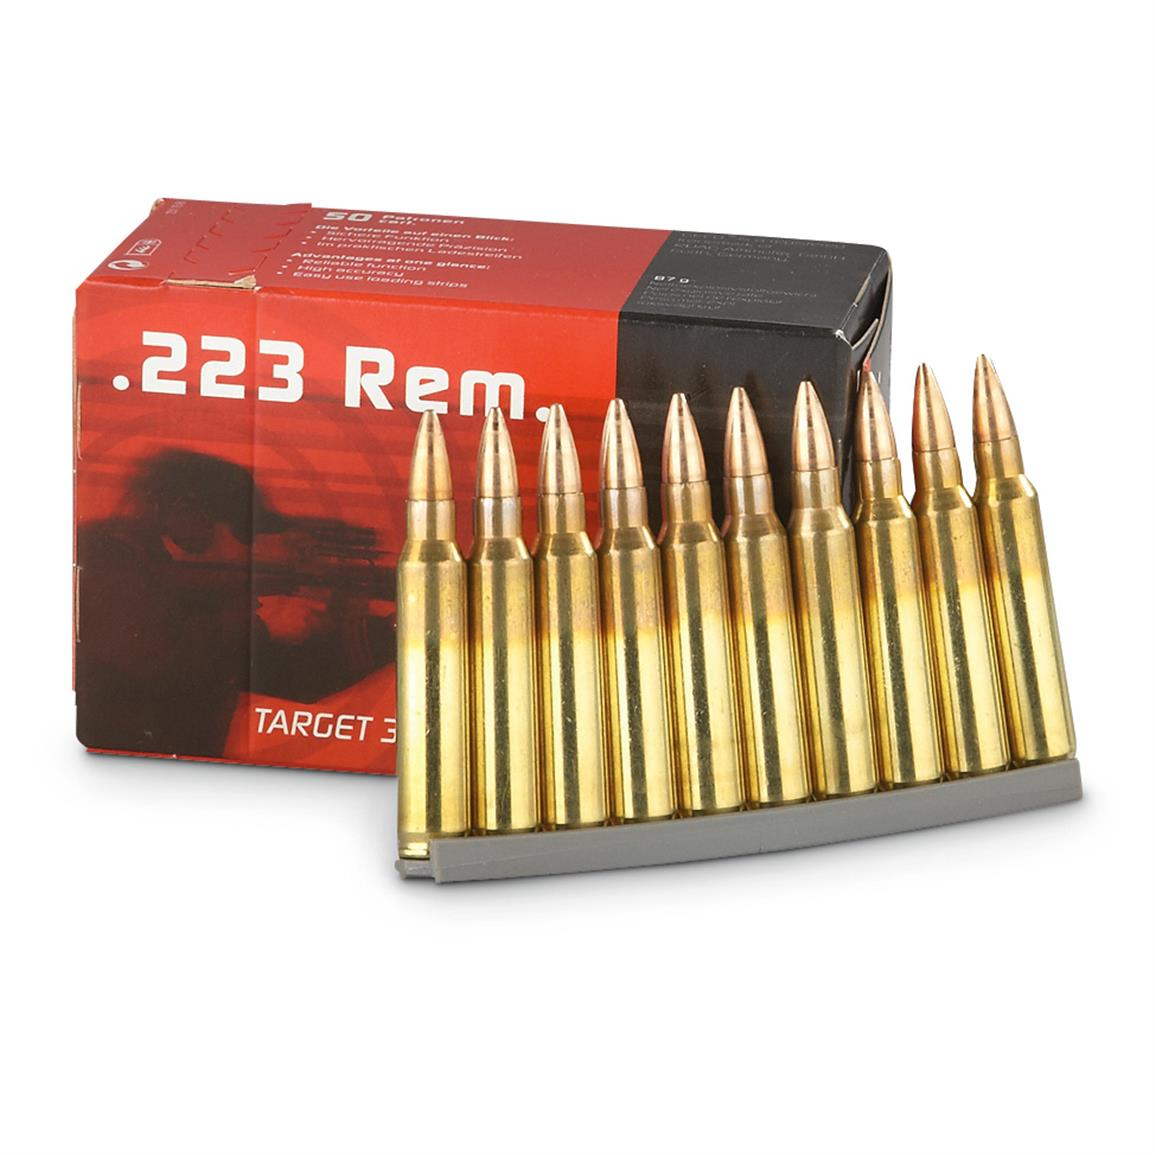 geco 223 remington fmj 55 grain 500 rounds 300806 223